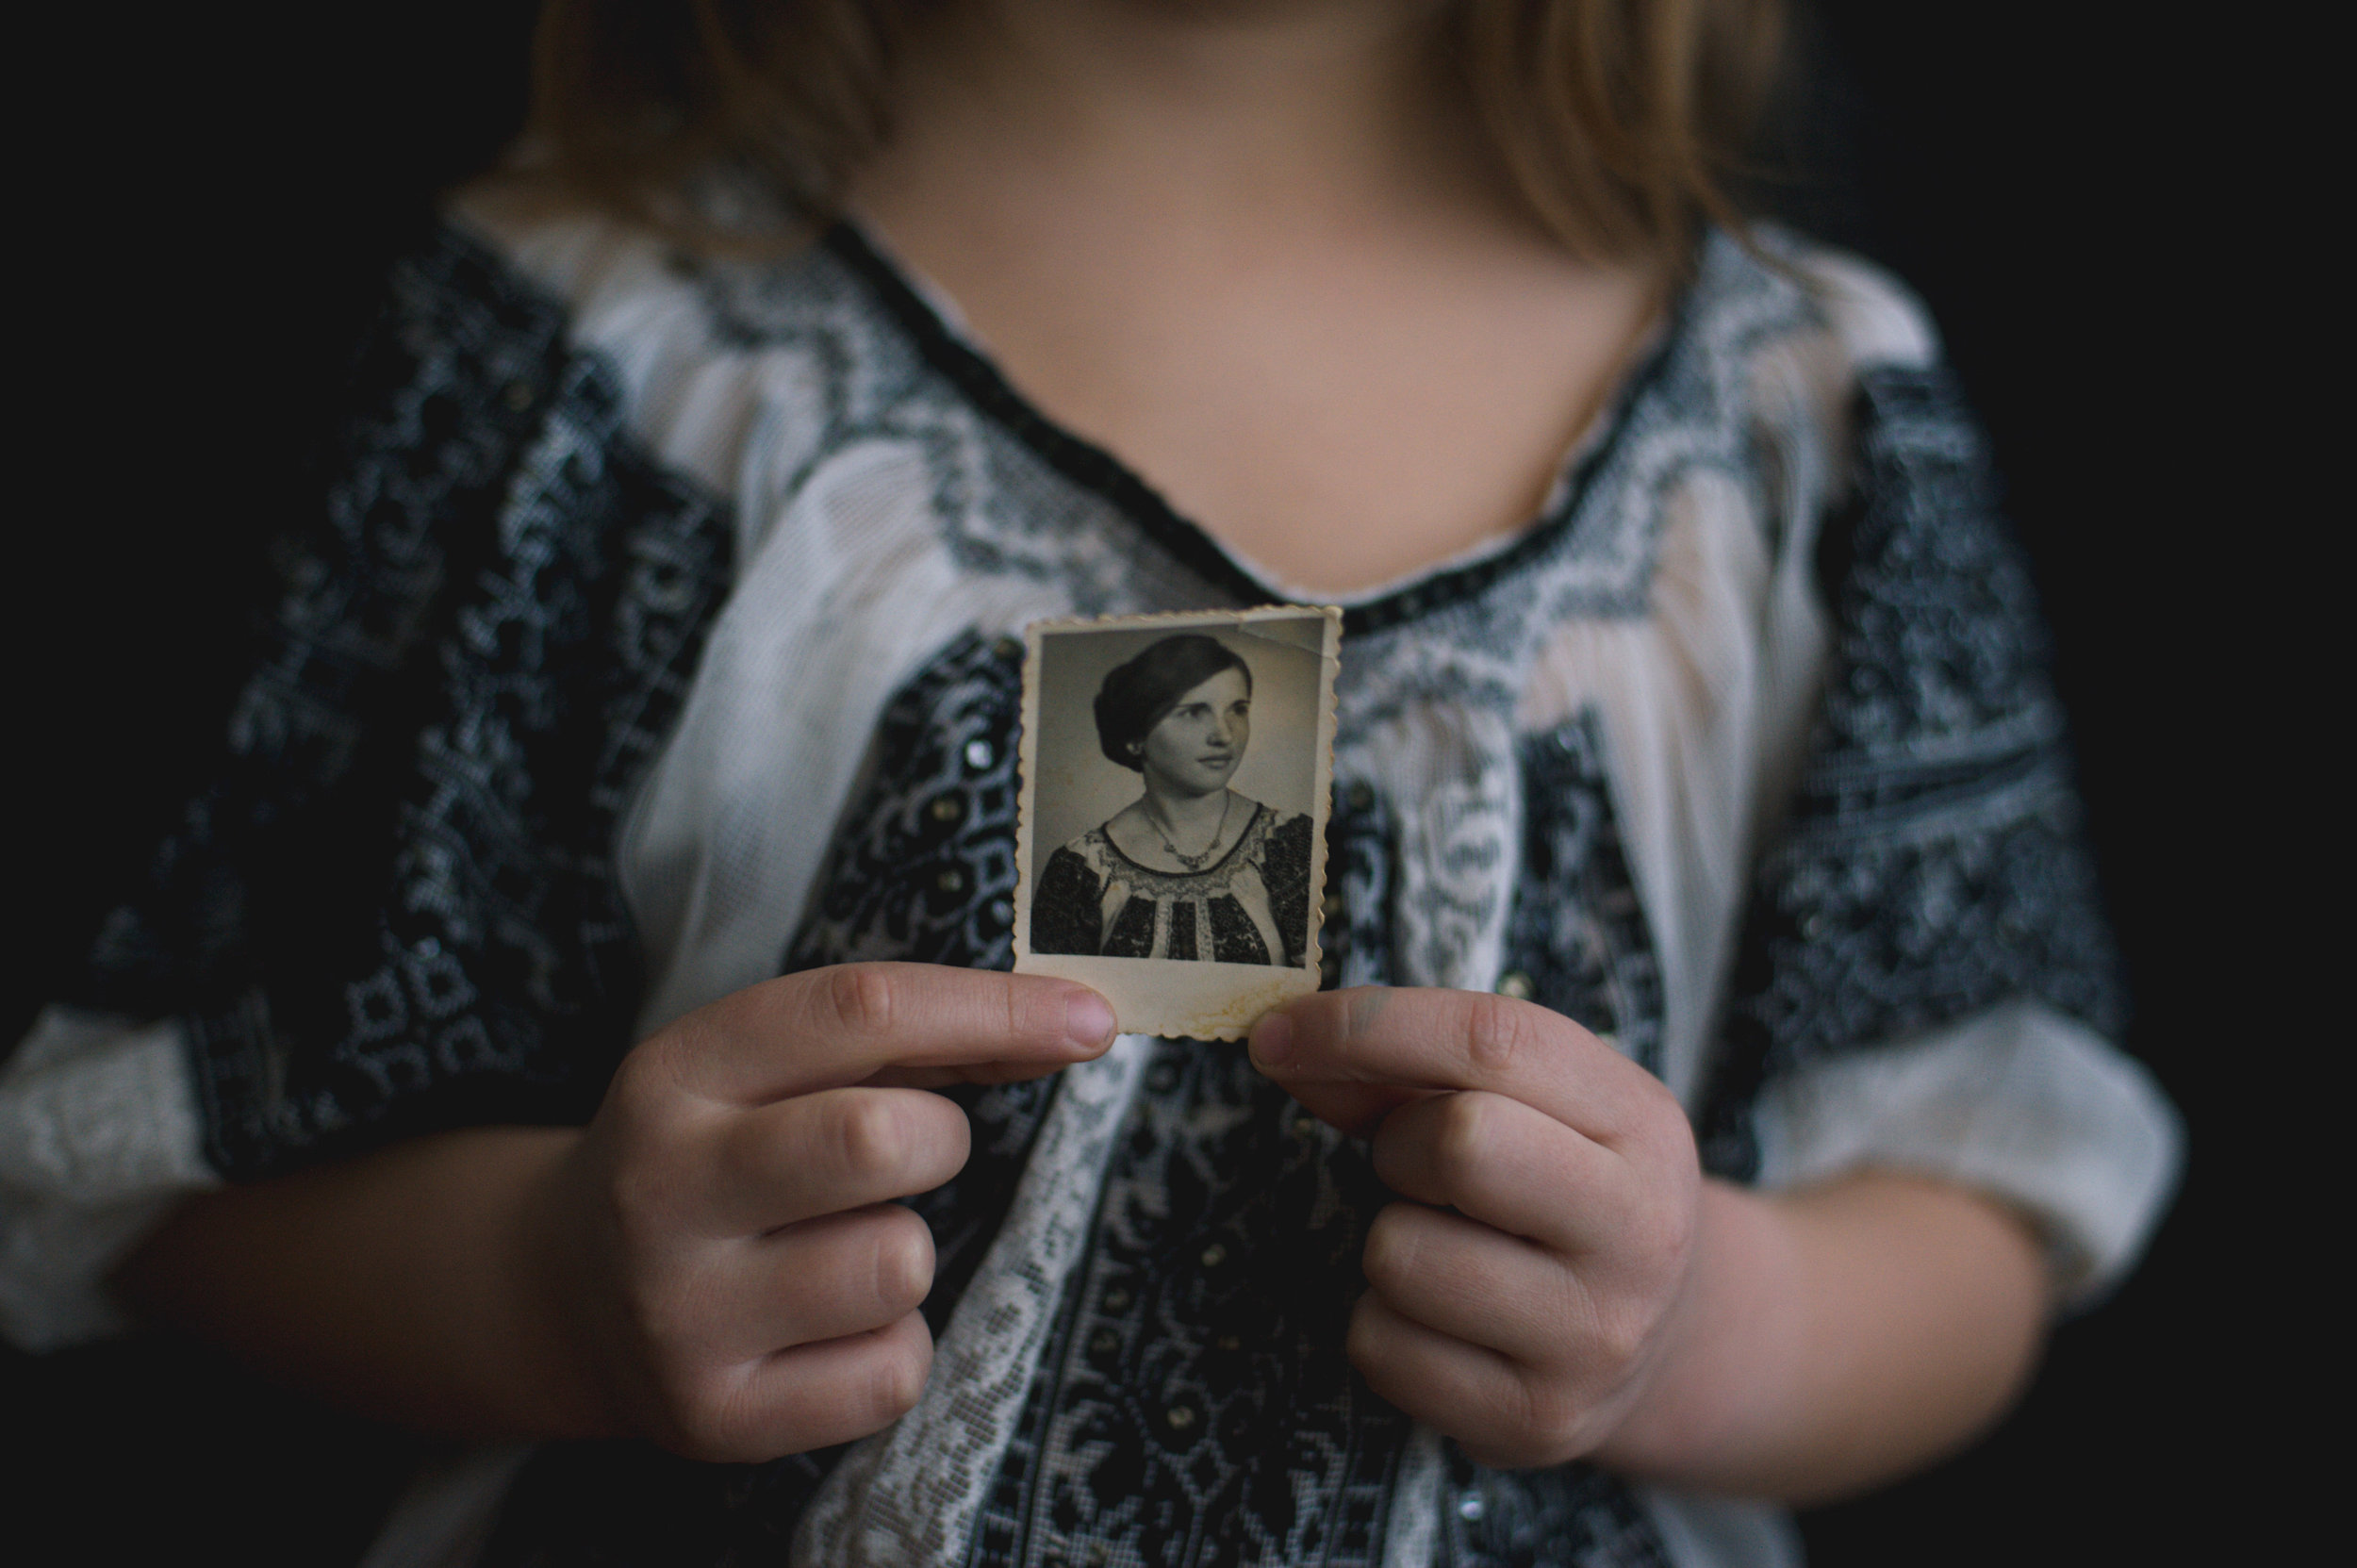 Adina's daughter, Ilinca (5), wears the same embroidered shirt as her grandmother (Adina's mother) in the photo she holds.